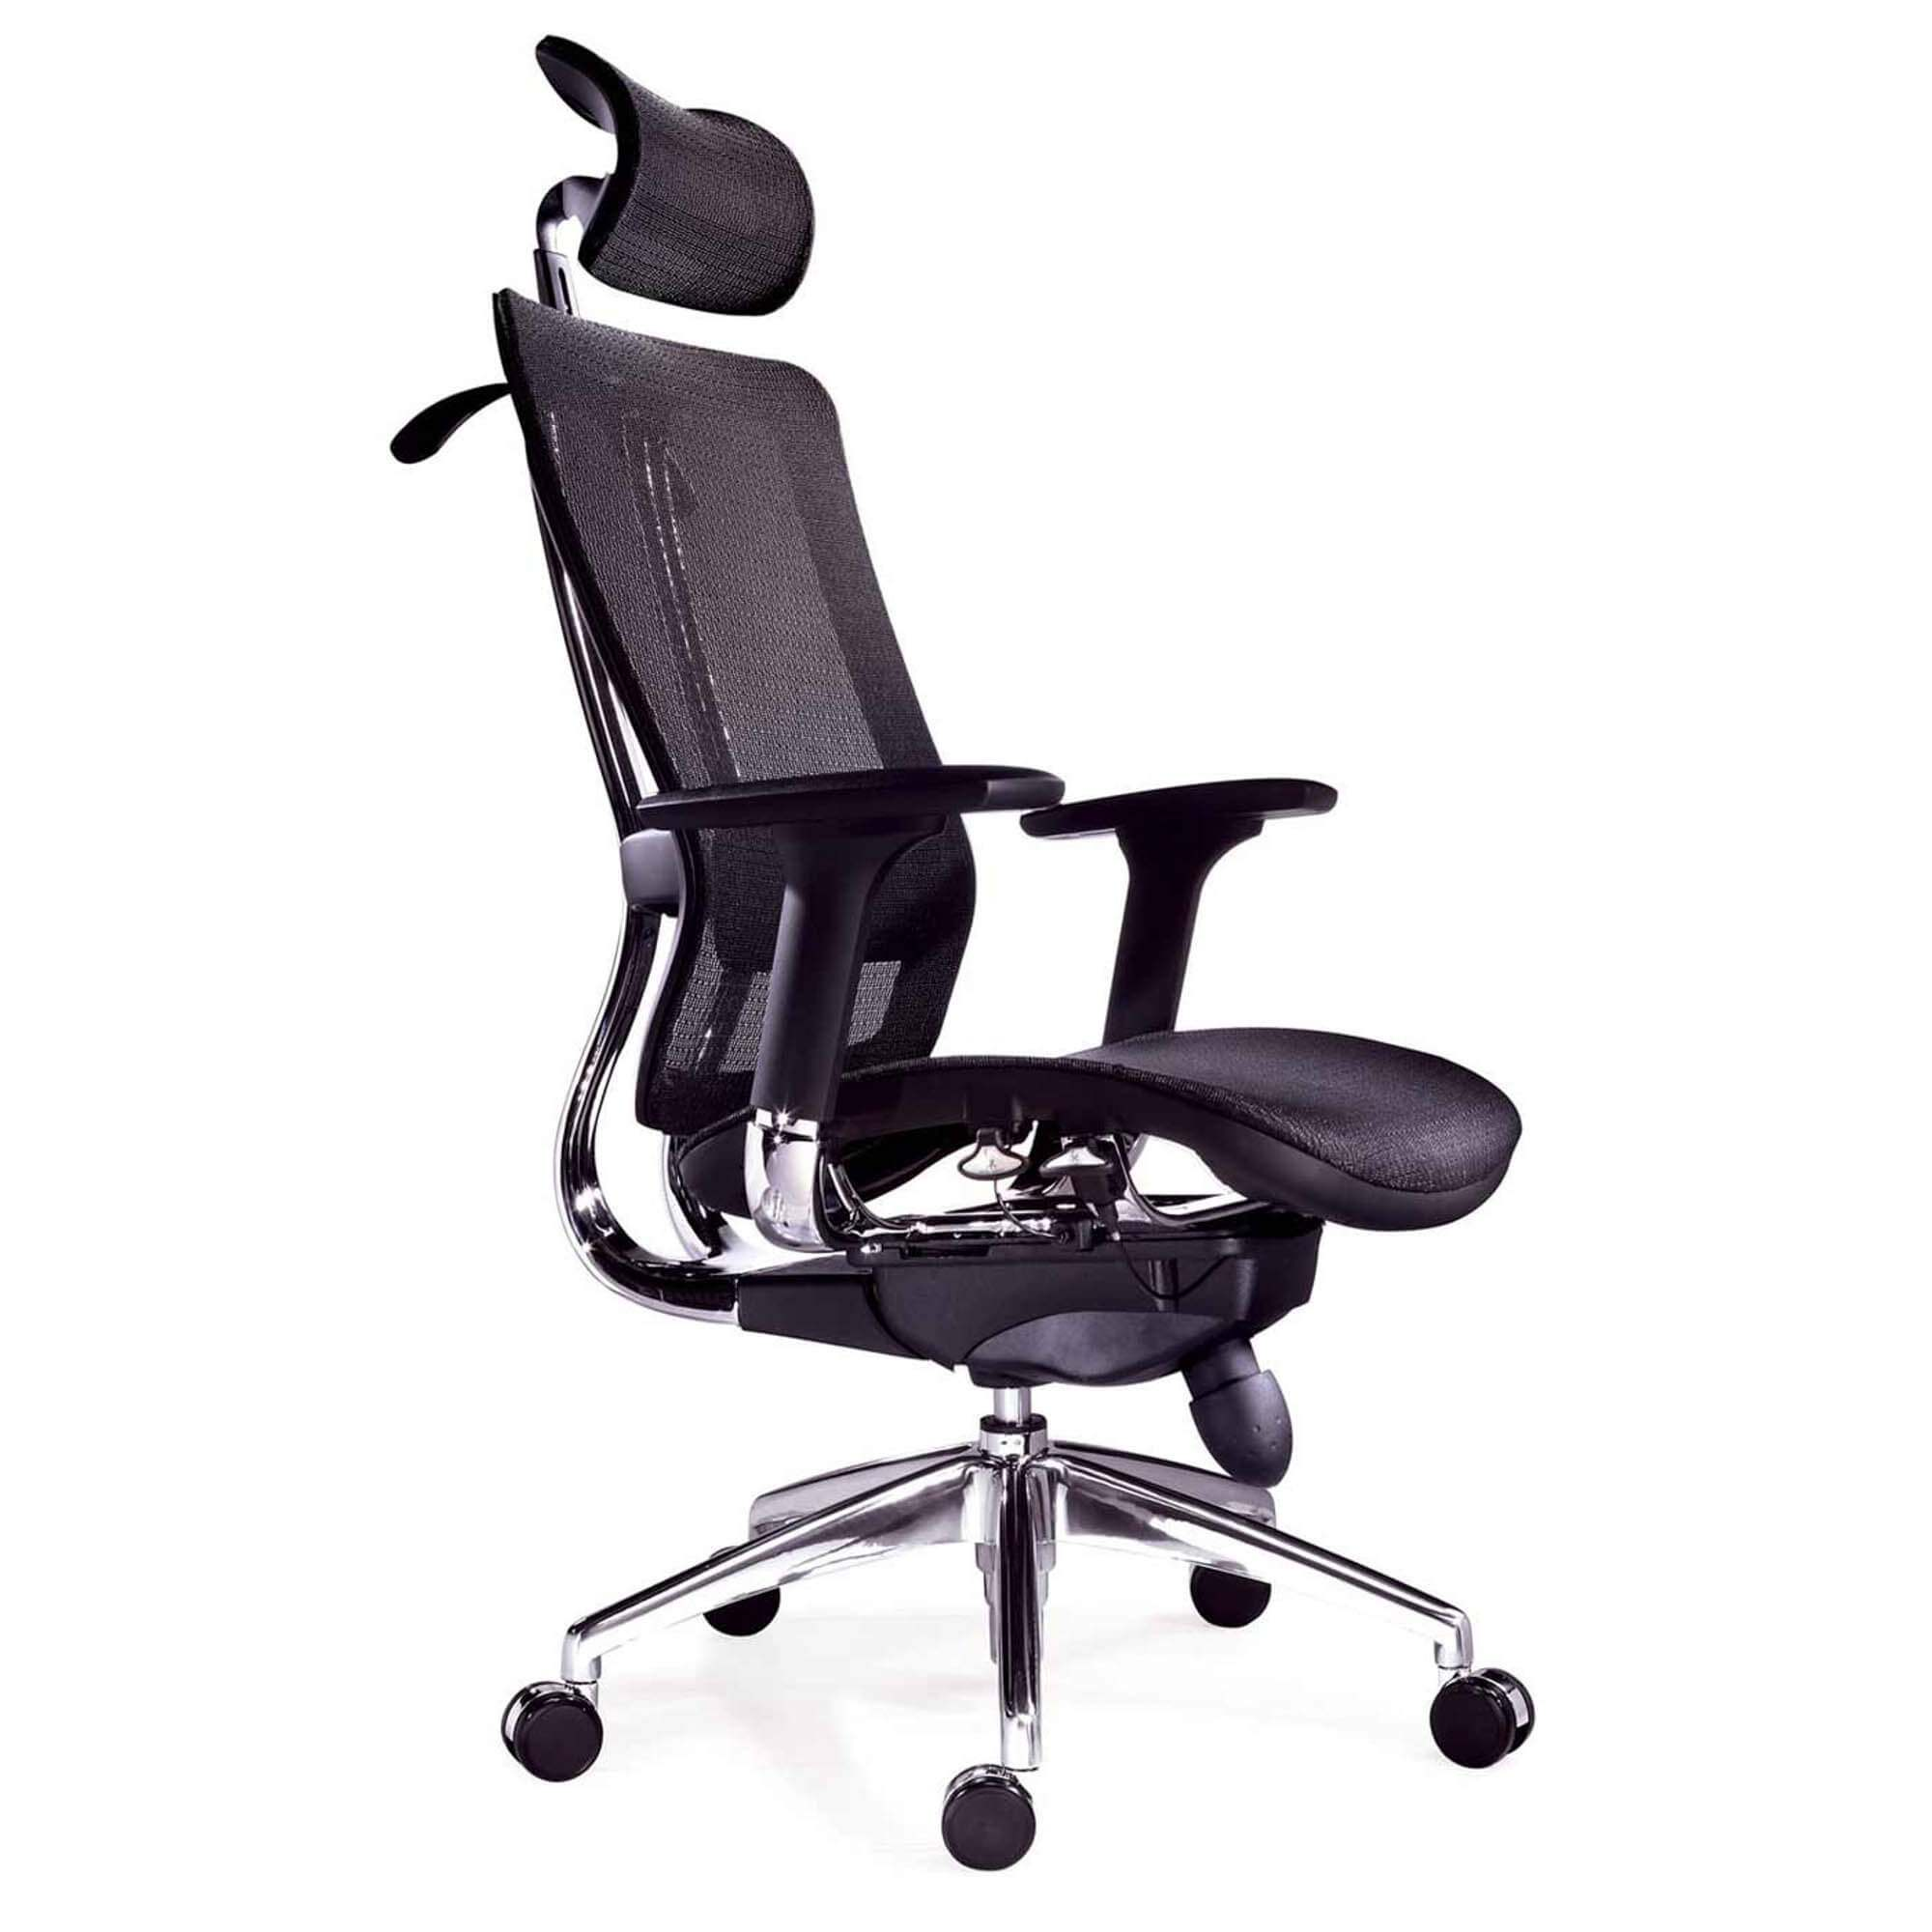 Are Ergonomic Office Chairs Better Than Normal Chairs Quora